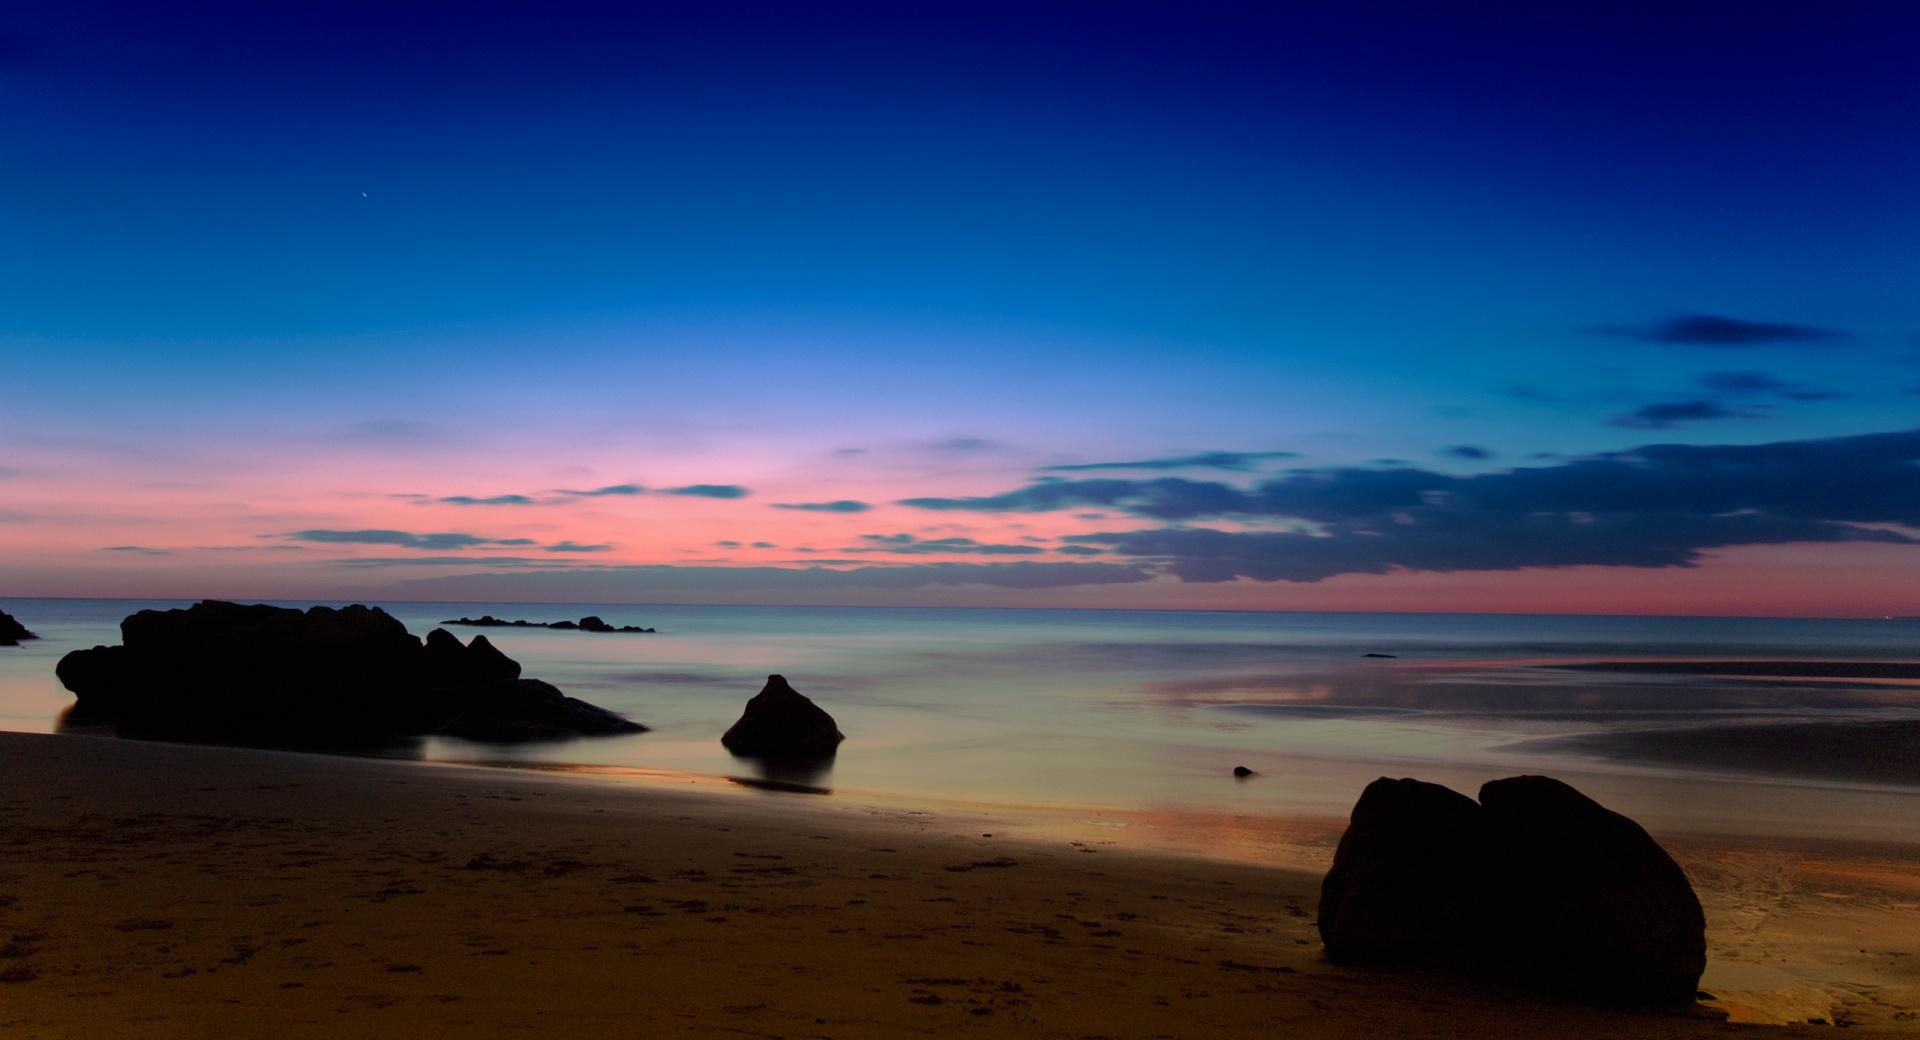 Seascape At Dusk wallpapers HD quality